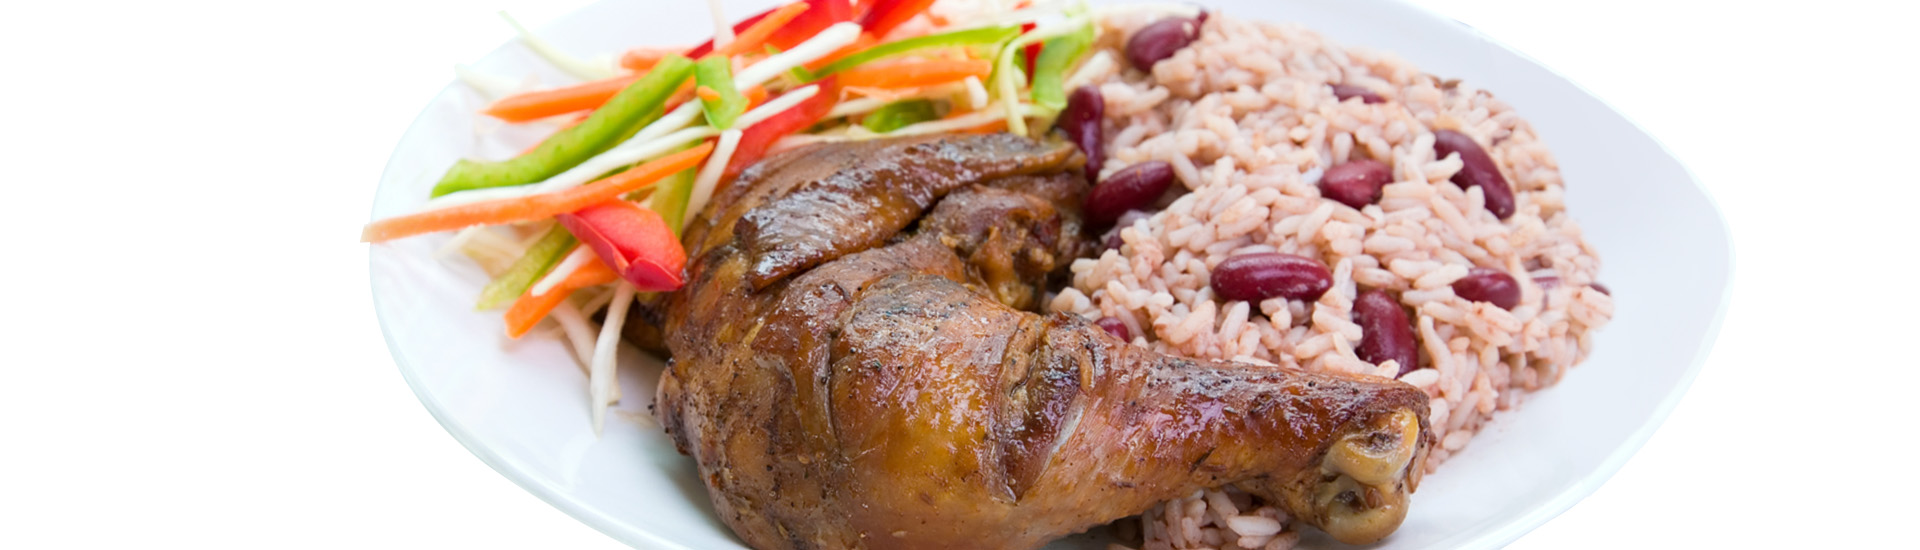 Caribbean Style Jerk Chicken Served with Rice Mixed